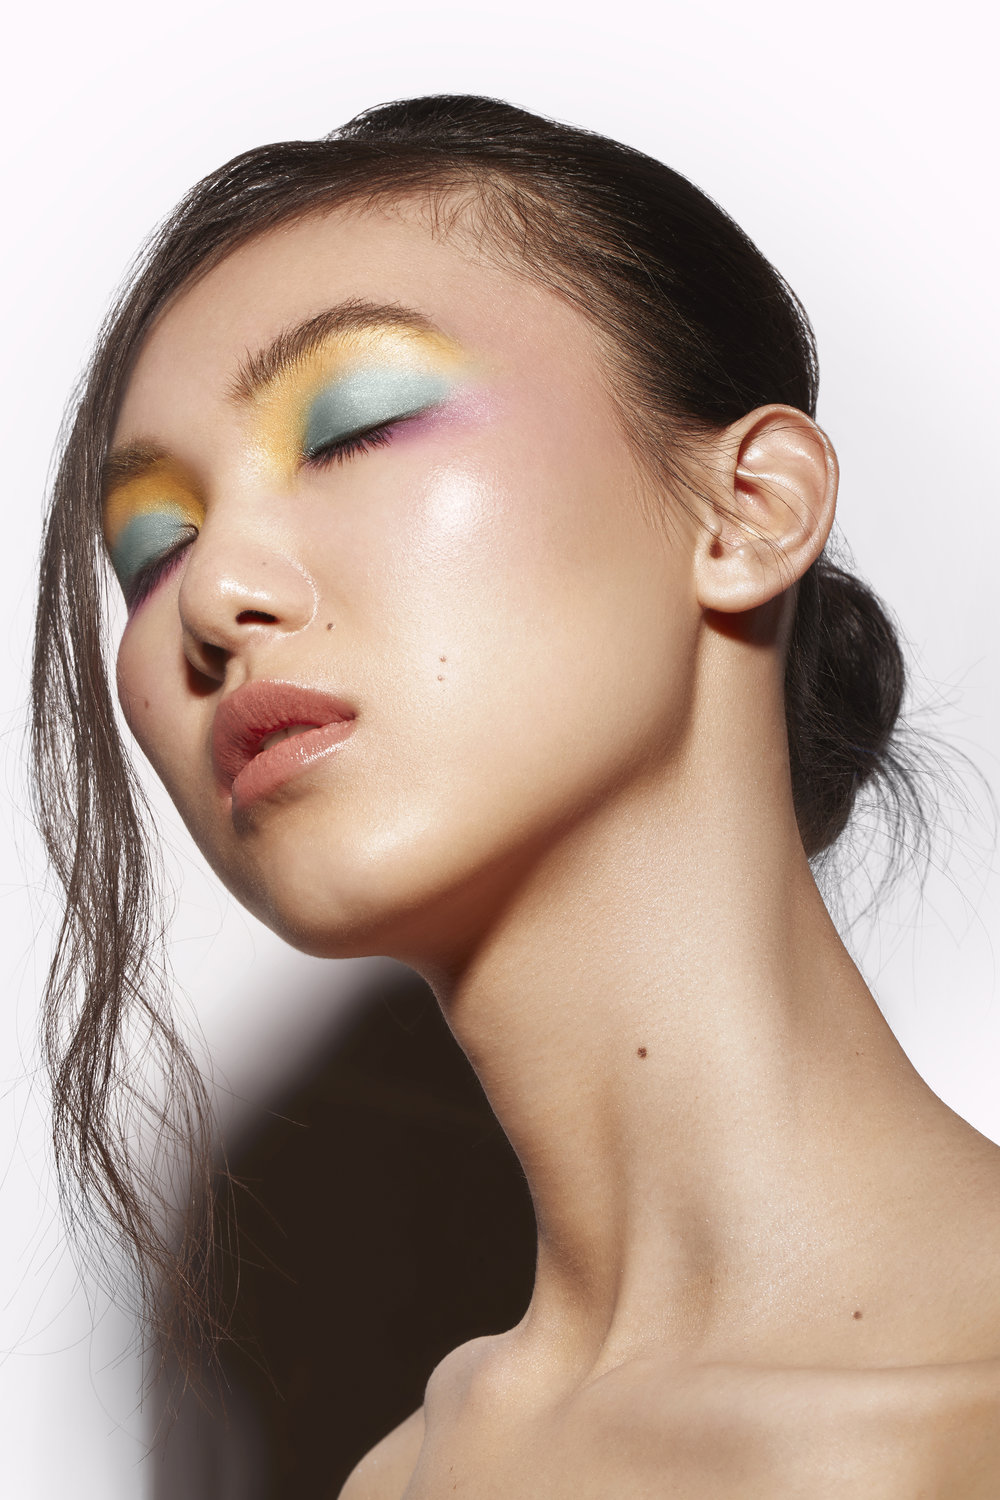 PASTEL LINES   Published in Volume 4 : Number 15 | March 2018  Photographer: Joelle Andrea: Model: Irene Yin | Look Model Agency; Makeup Artist: Eugeniya Lomeyko; Hair Stylist: Svetlana Cramer